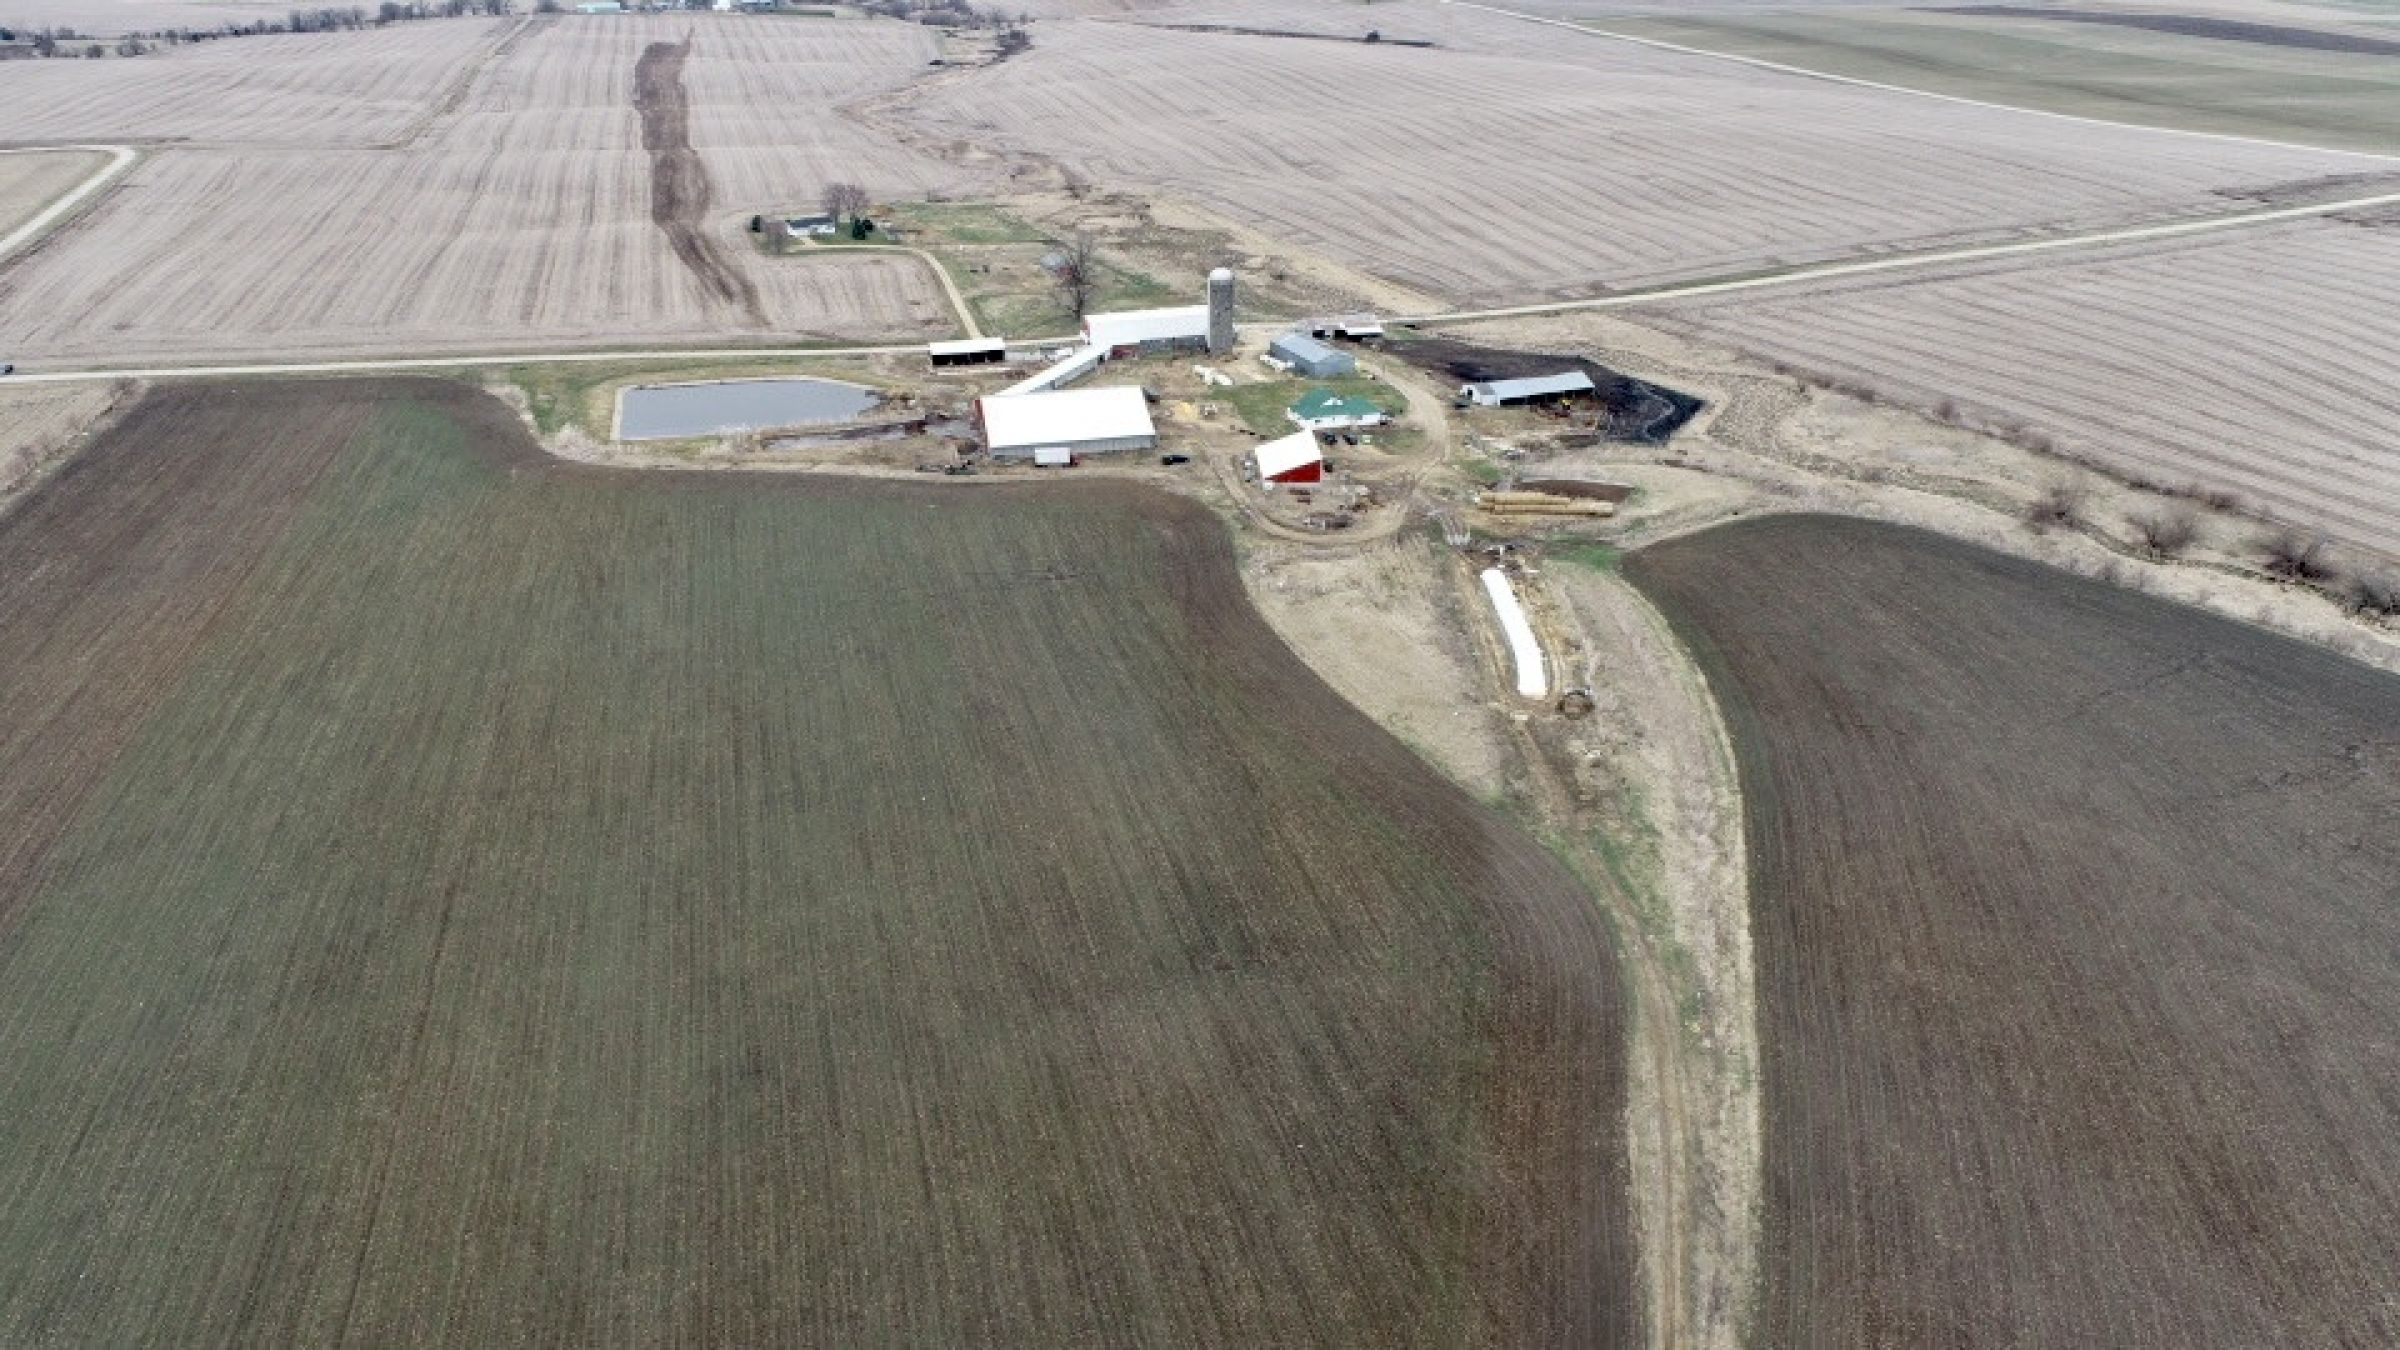 land-lafayette-county-wisconsin-47-acres-listing-number-15428-15-2021-03-25-172103.jpg